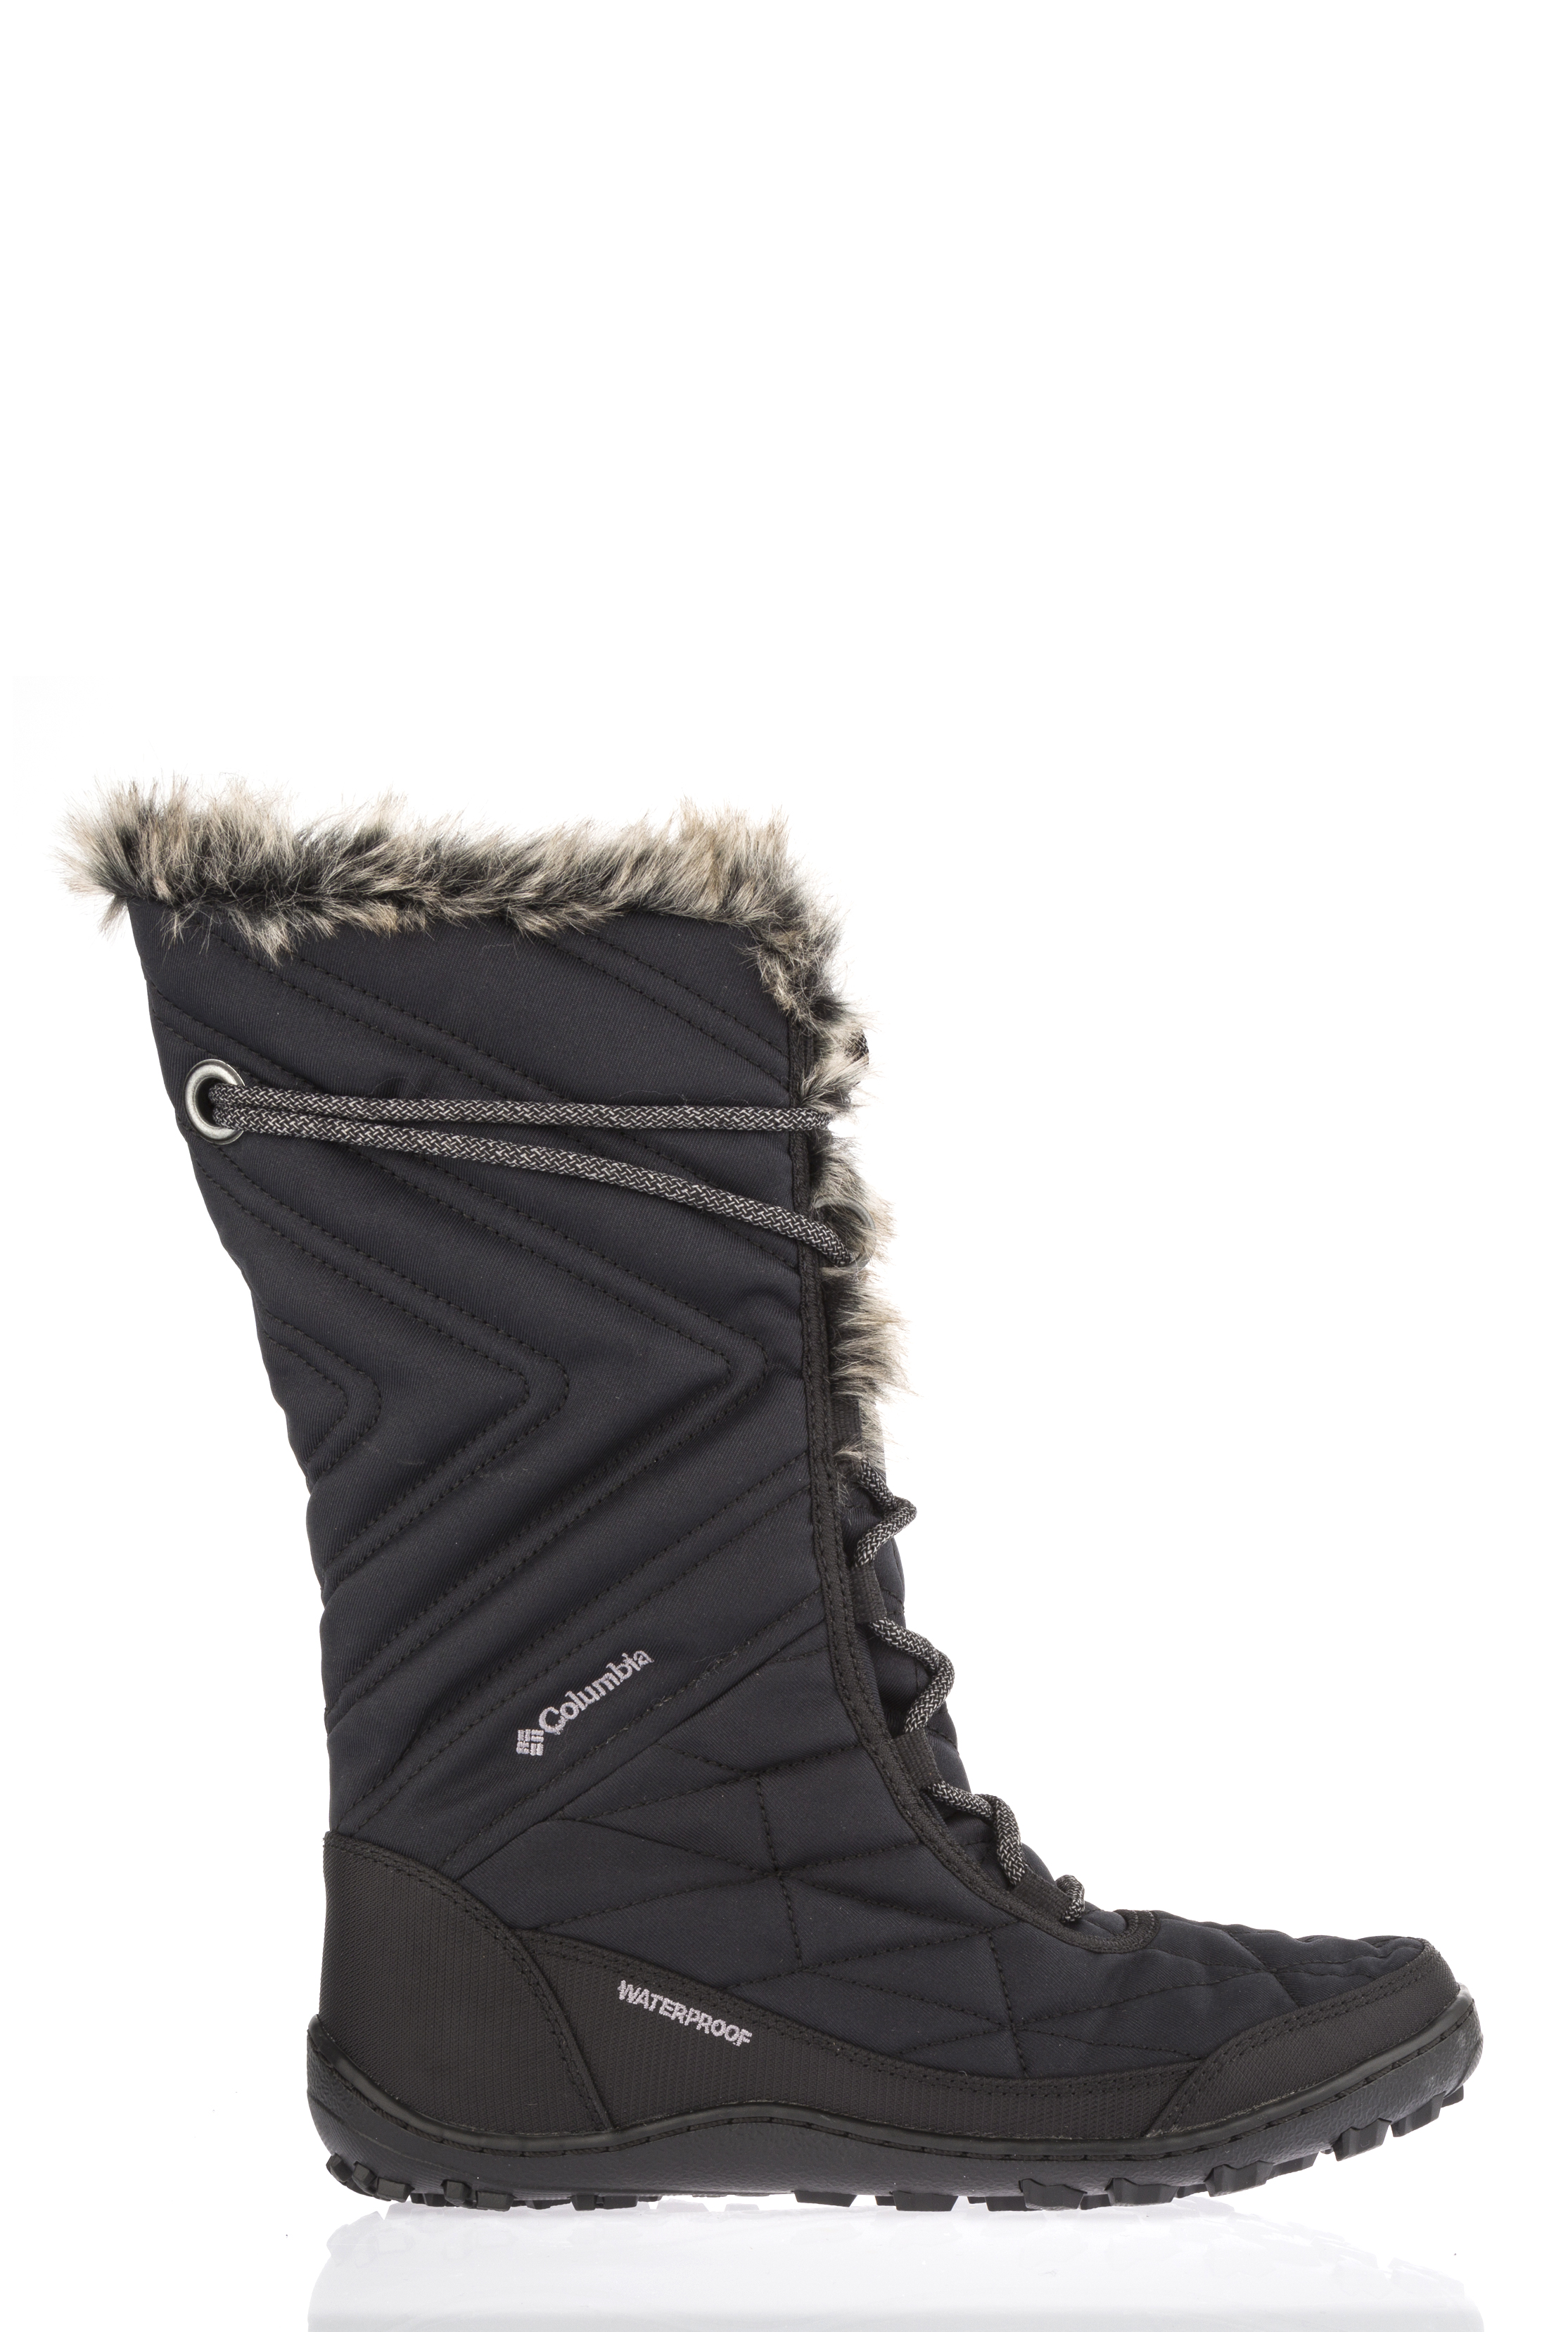 Columbia Minx Black Mid III Winter Boots